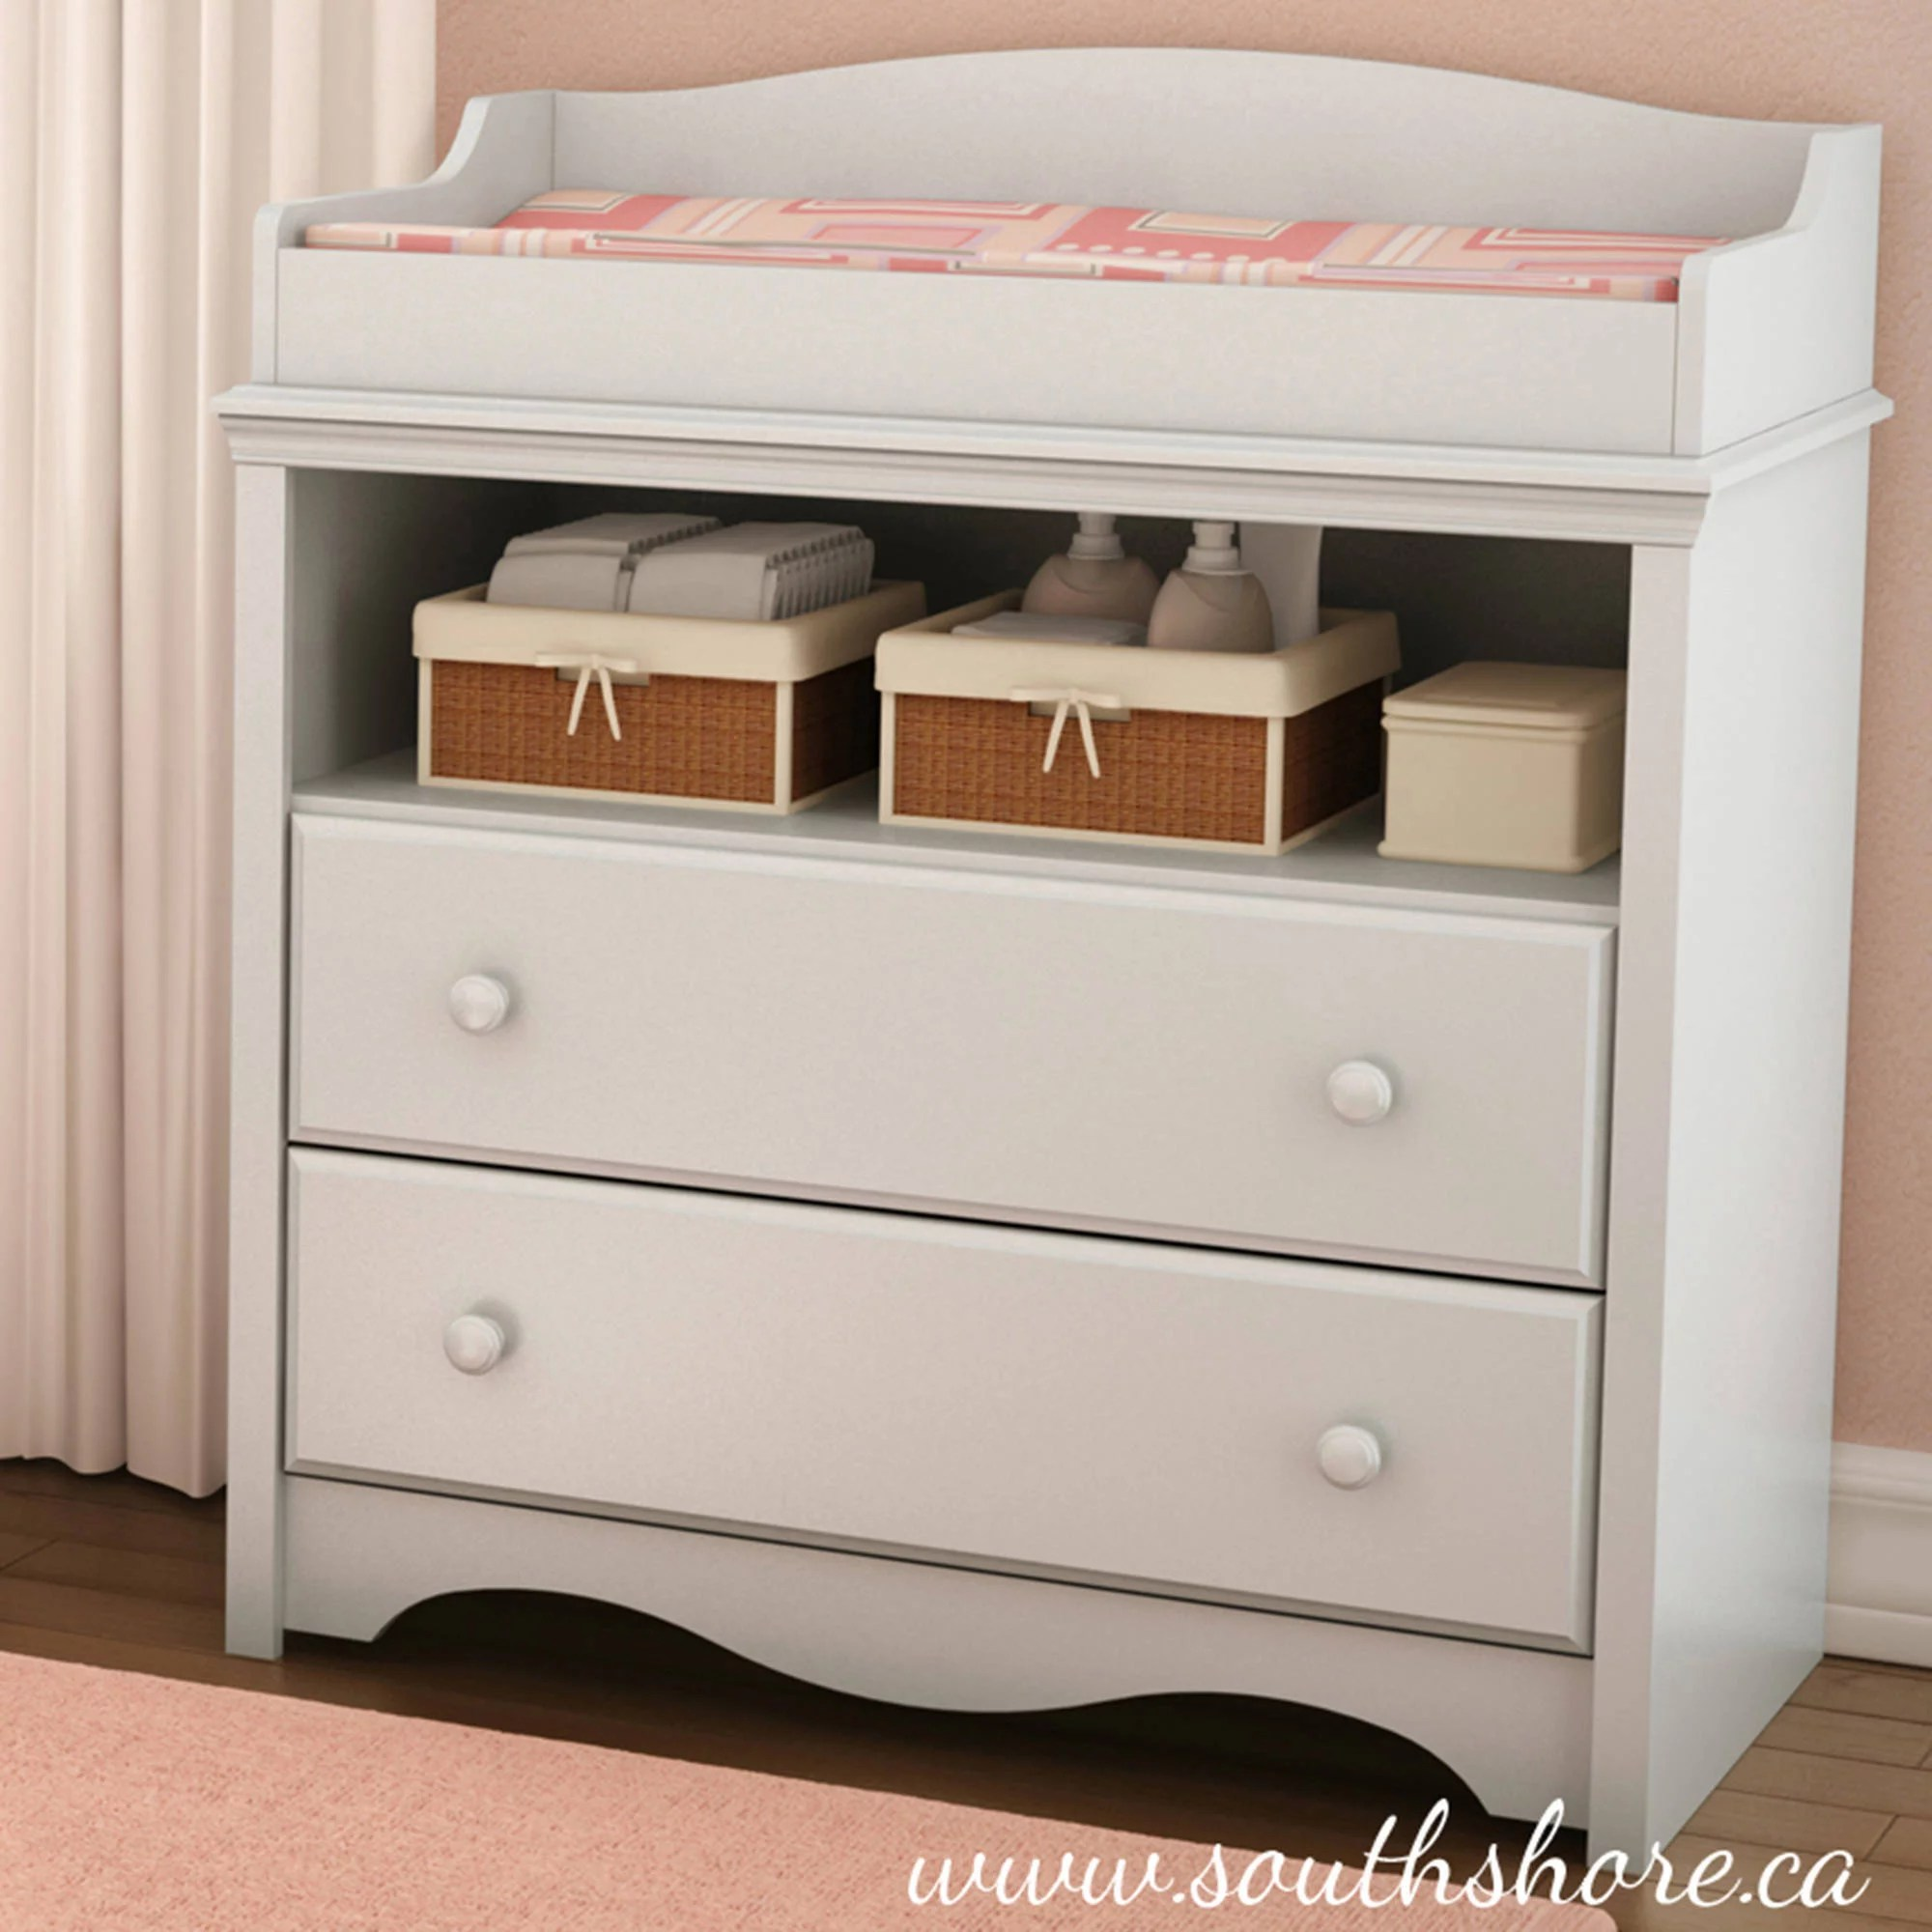 Changing Table Chest Of Drawers South Shore Fundy Tide Changing Table And 4 Drawer Chest Multiple Finishes